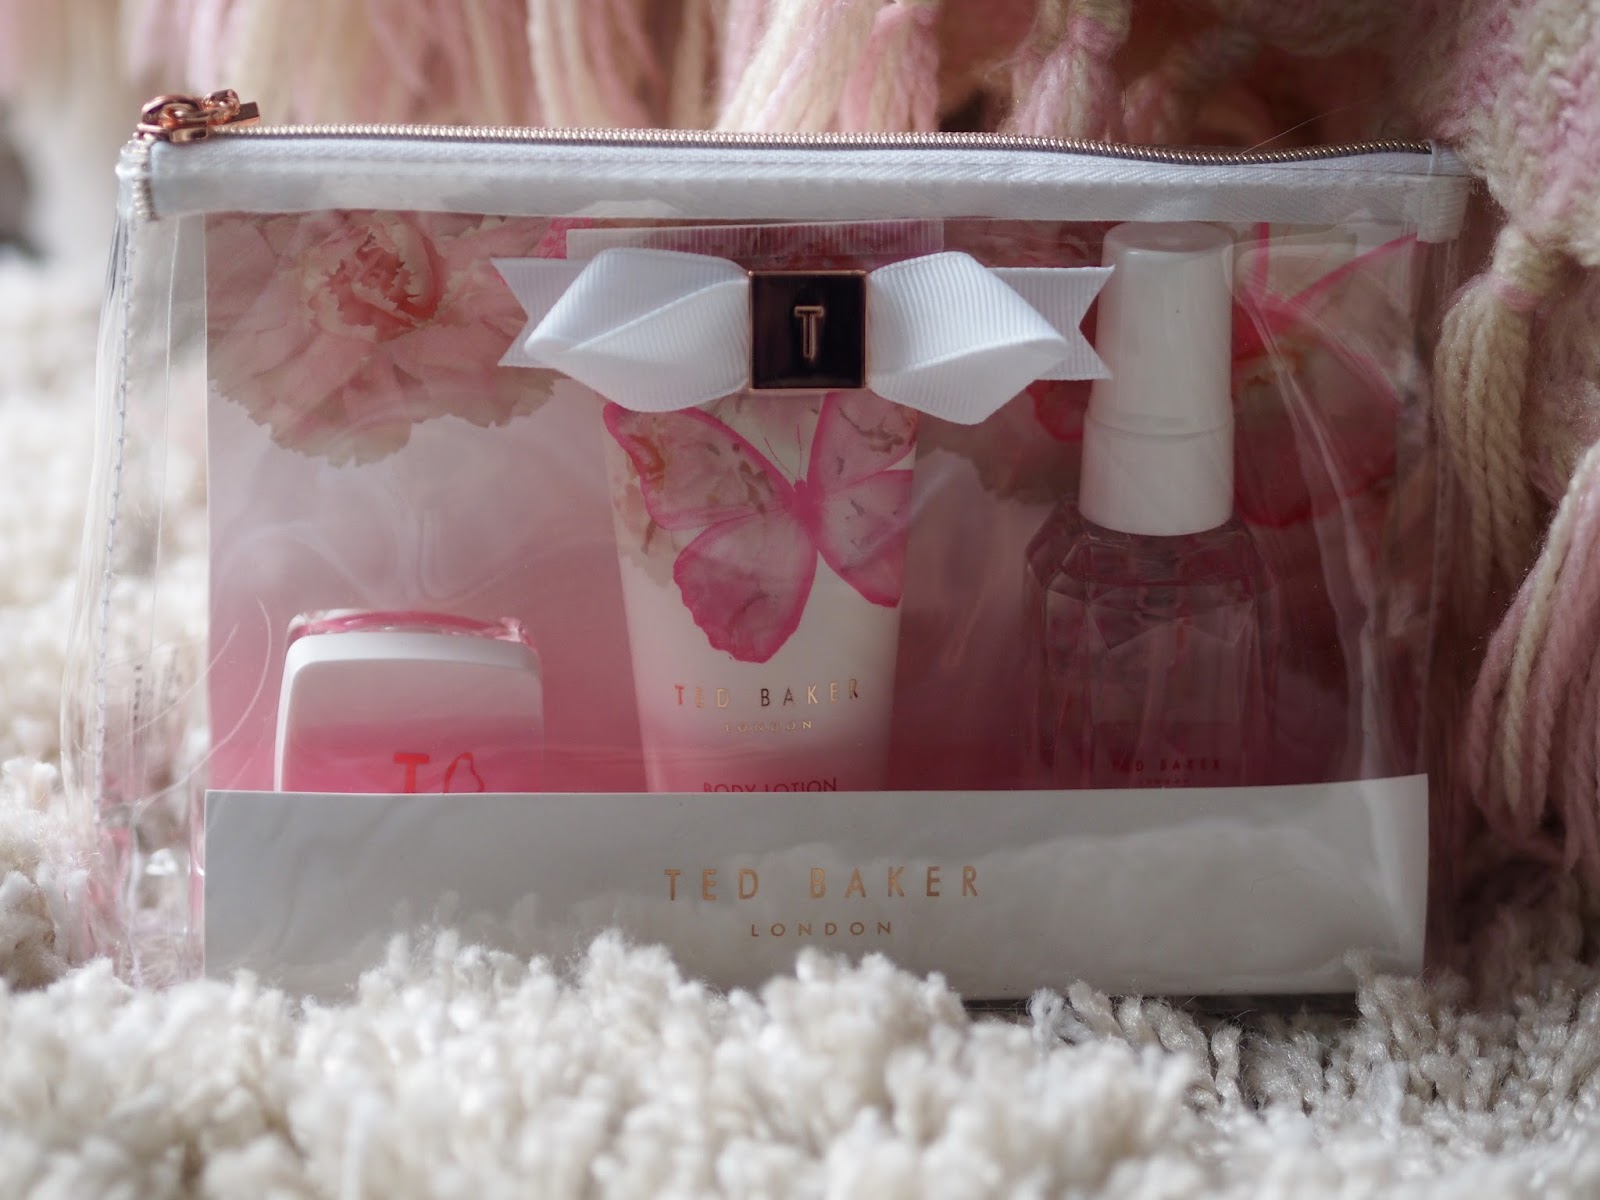 Ted Baker Christmas gift sets